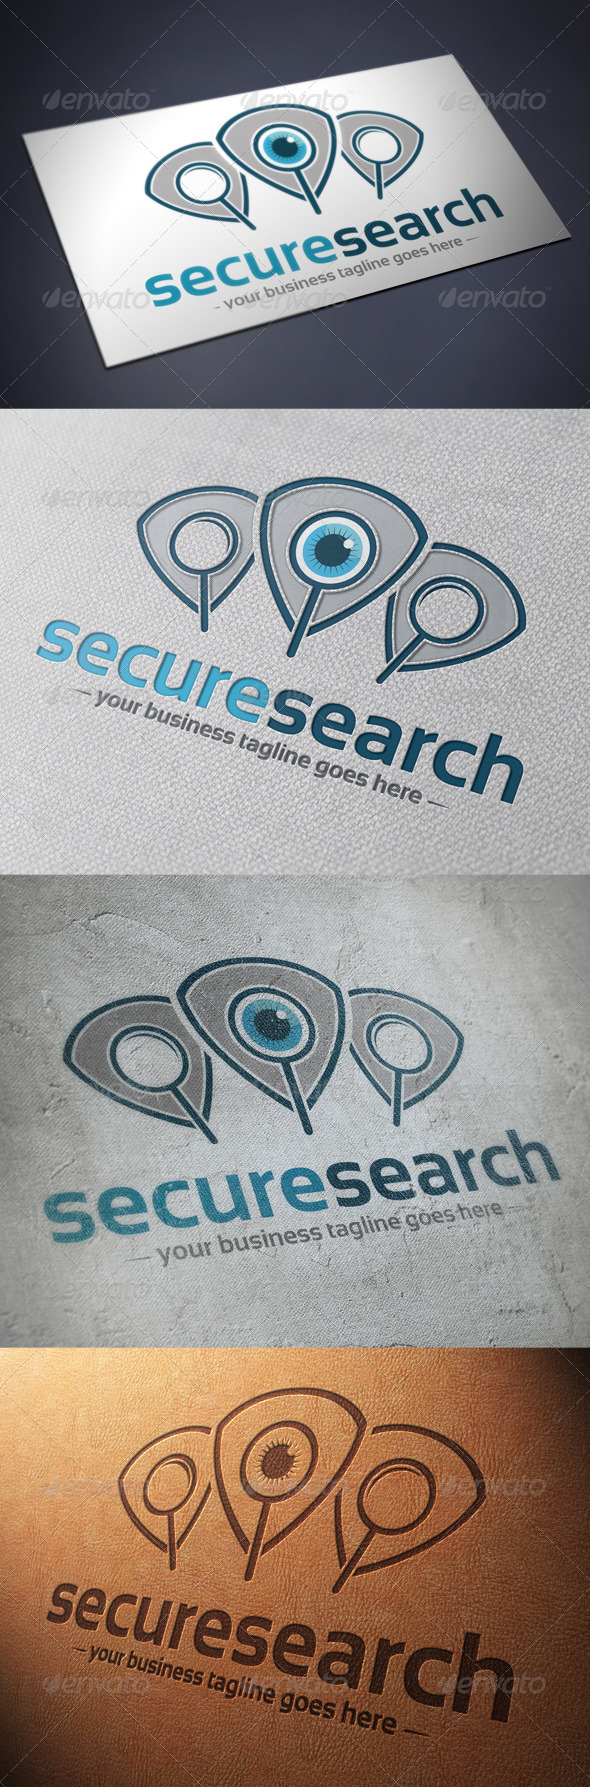 GraphicRiver Security Search Logo Template 4848163